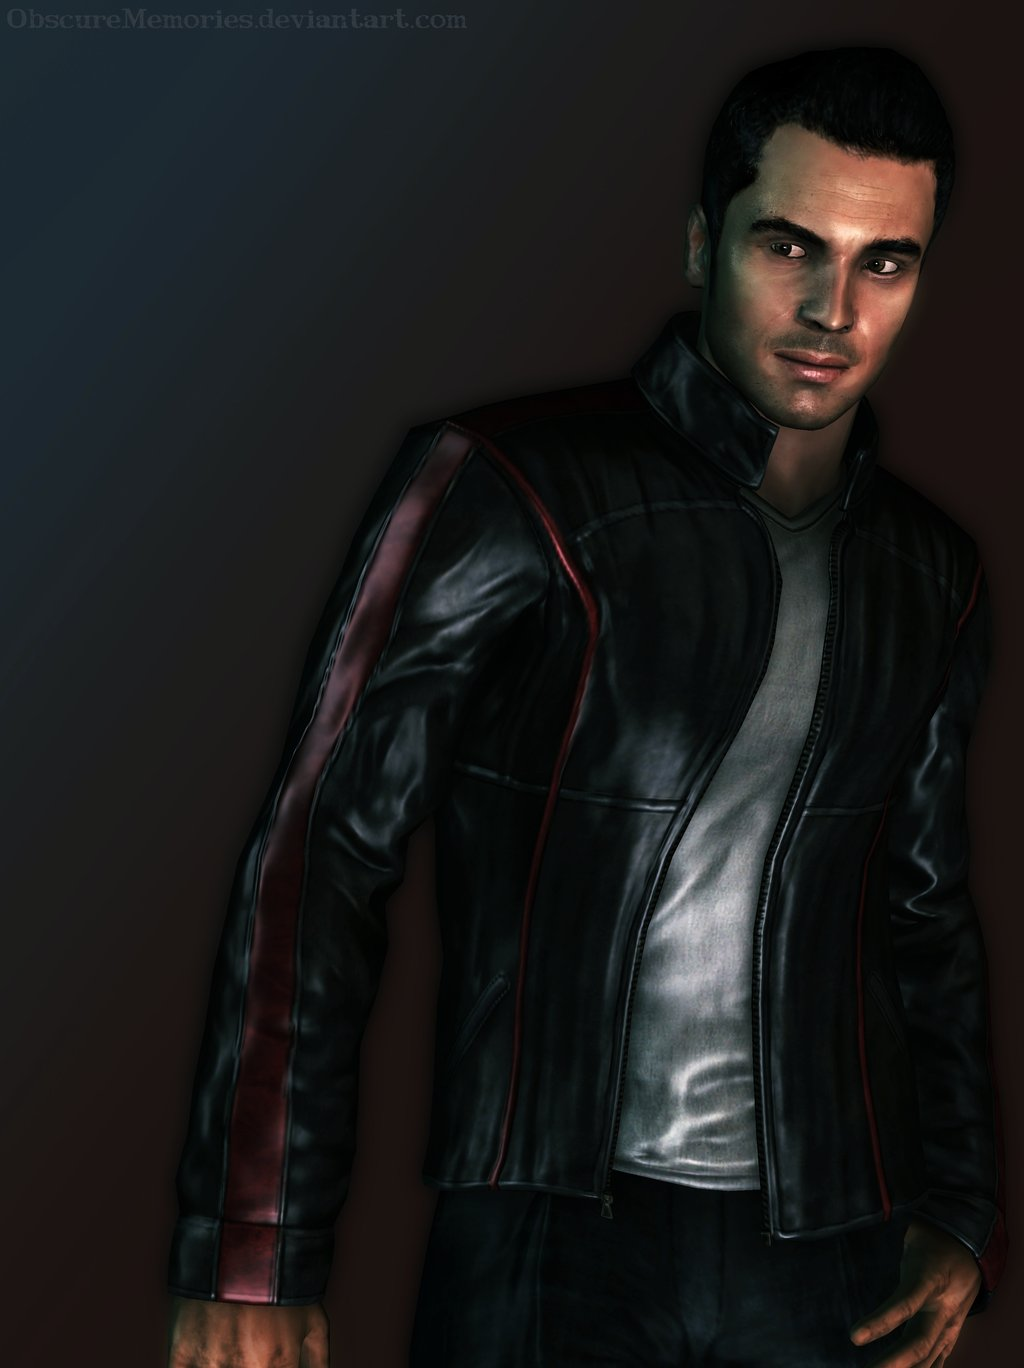 kaidan_in_leather___jacket_by_obscurememories.jpg